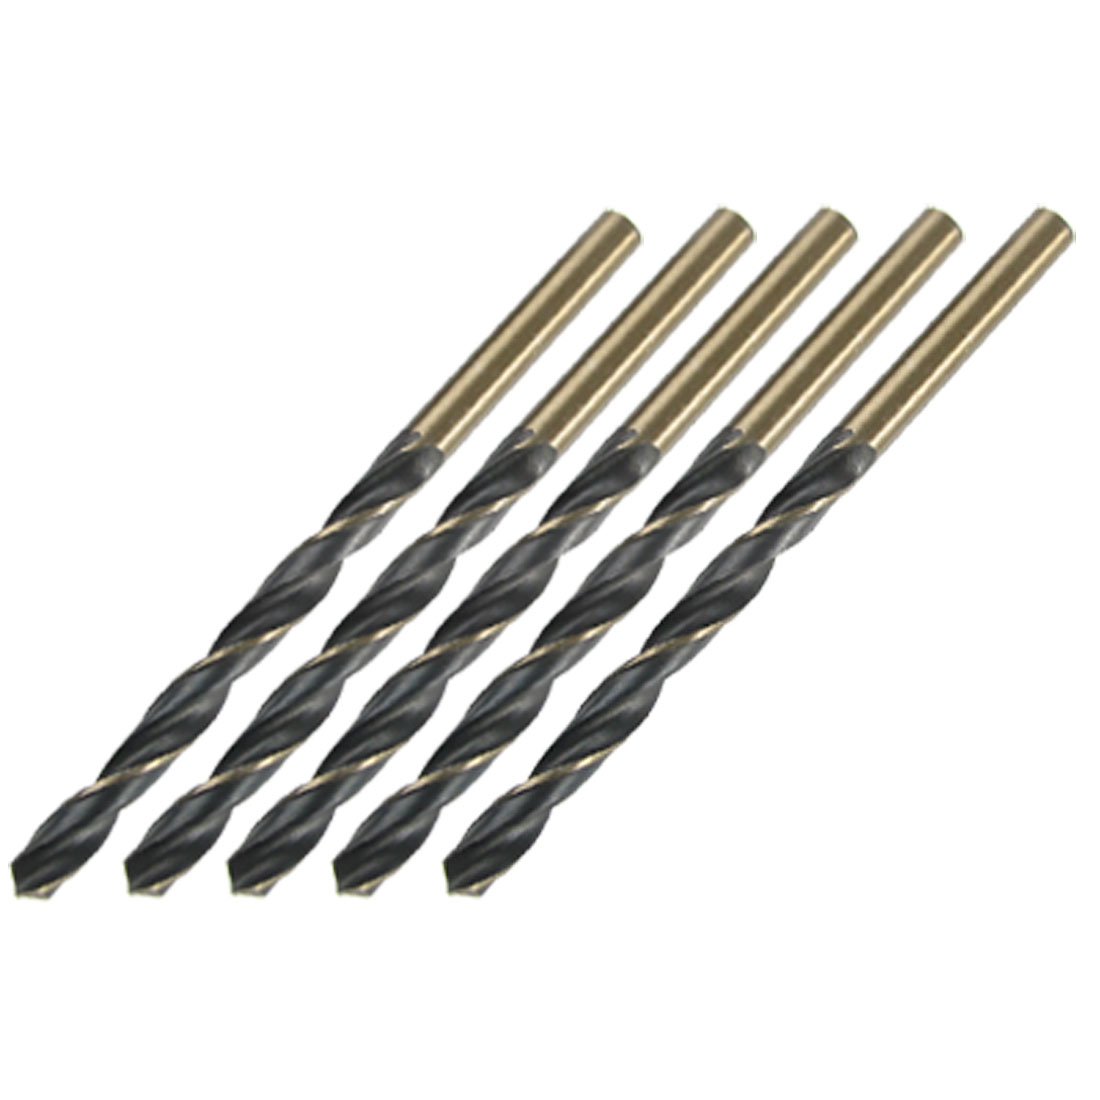 5 Pcs Straight Shank 3.5mm Spiral Twist Drill Bit Set